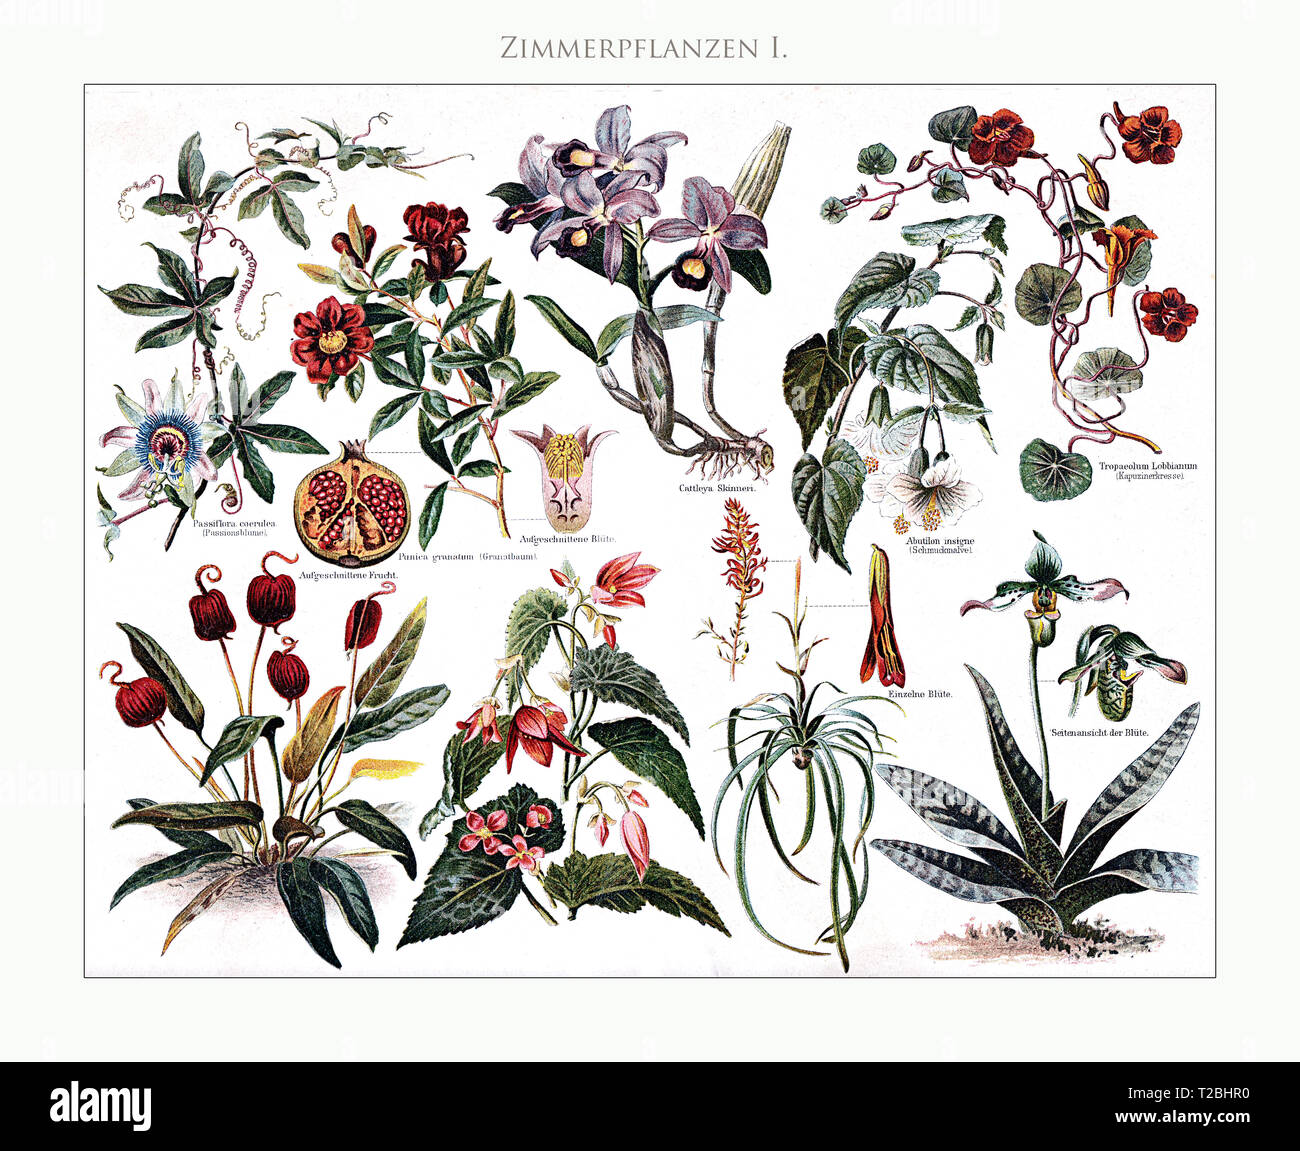 Houseplants - table illustrated and restored from Meyers Konversations-Lexikon 5. edition (1893-1901), universal encyclopedia in German language. - Stock Image